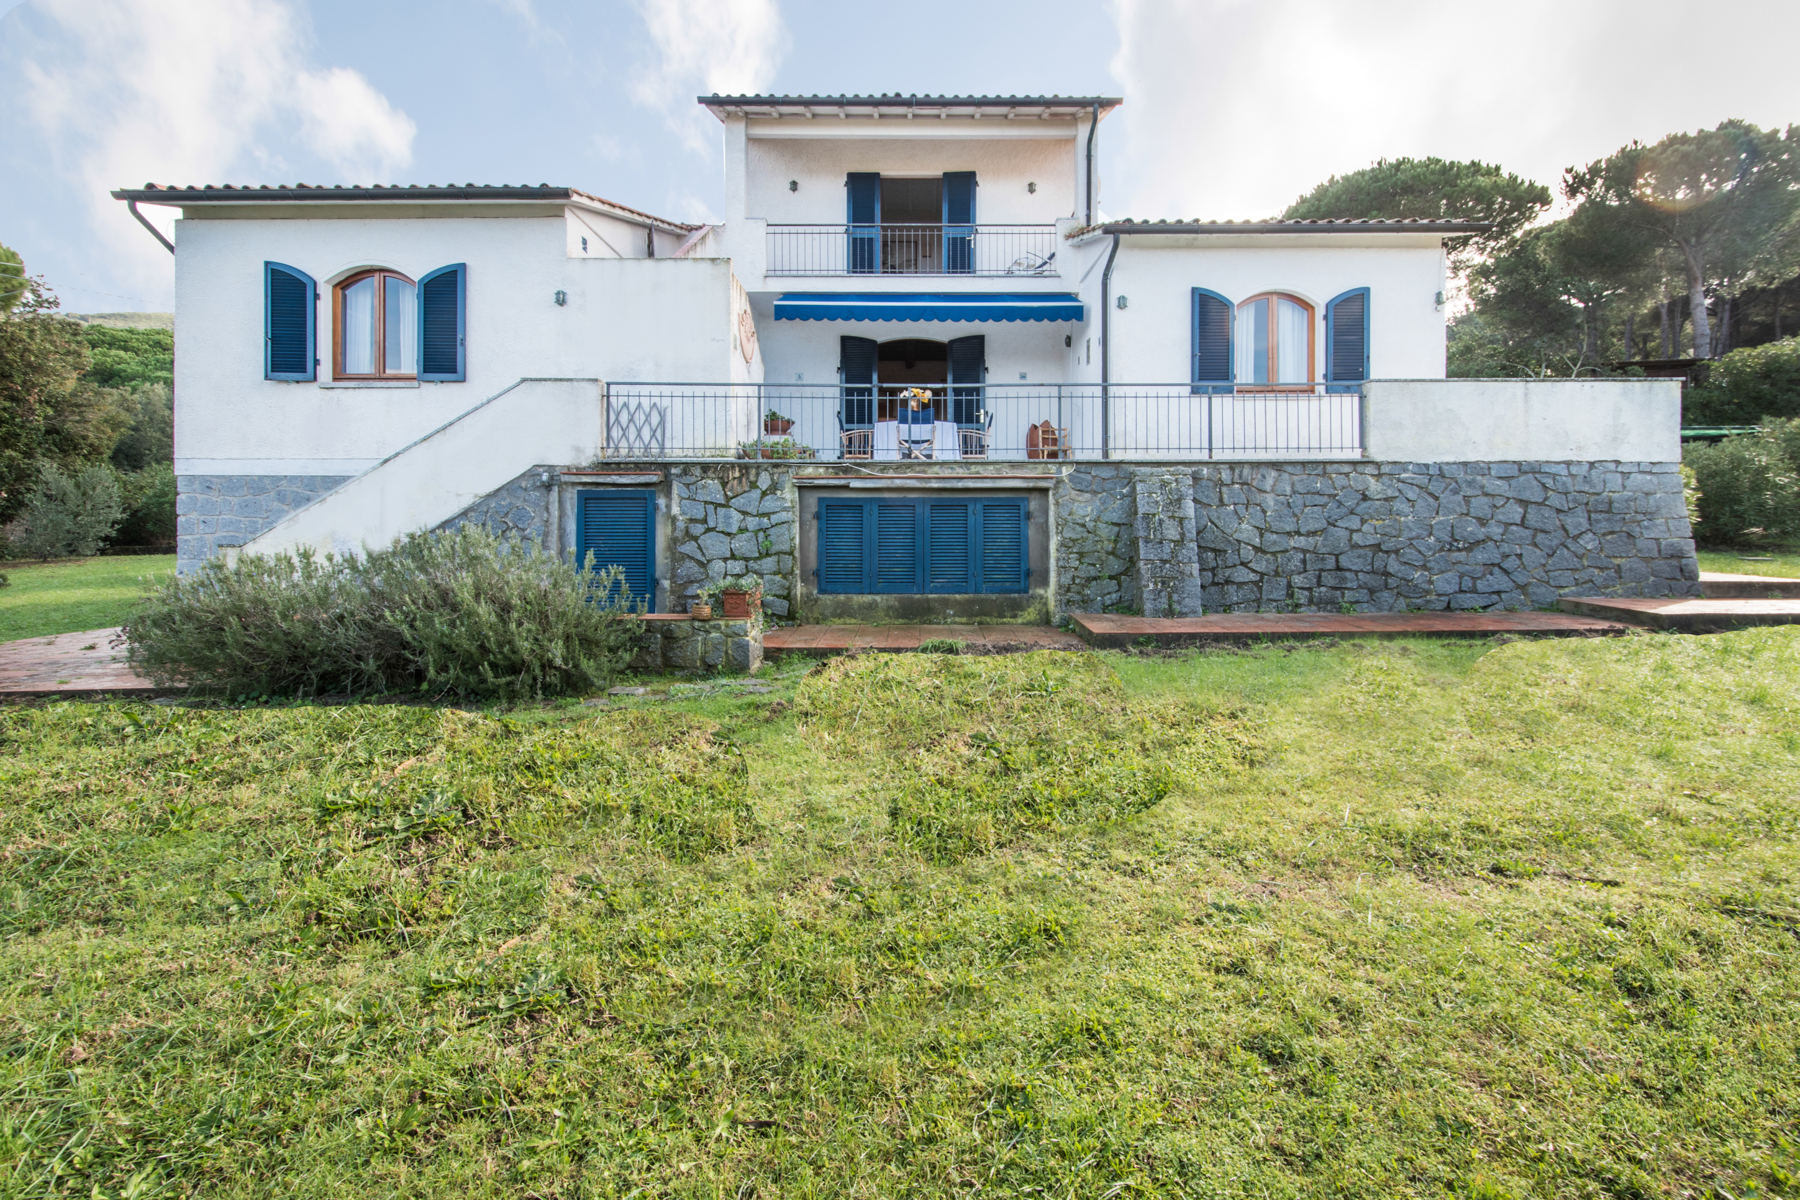 Single Family Home for Sale at Detached villa nestled within fenced garden Via di Campo all'Aia Marciana, Livorno 57033 Italy